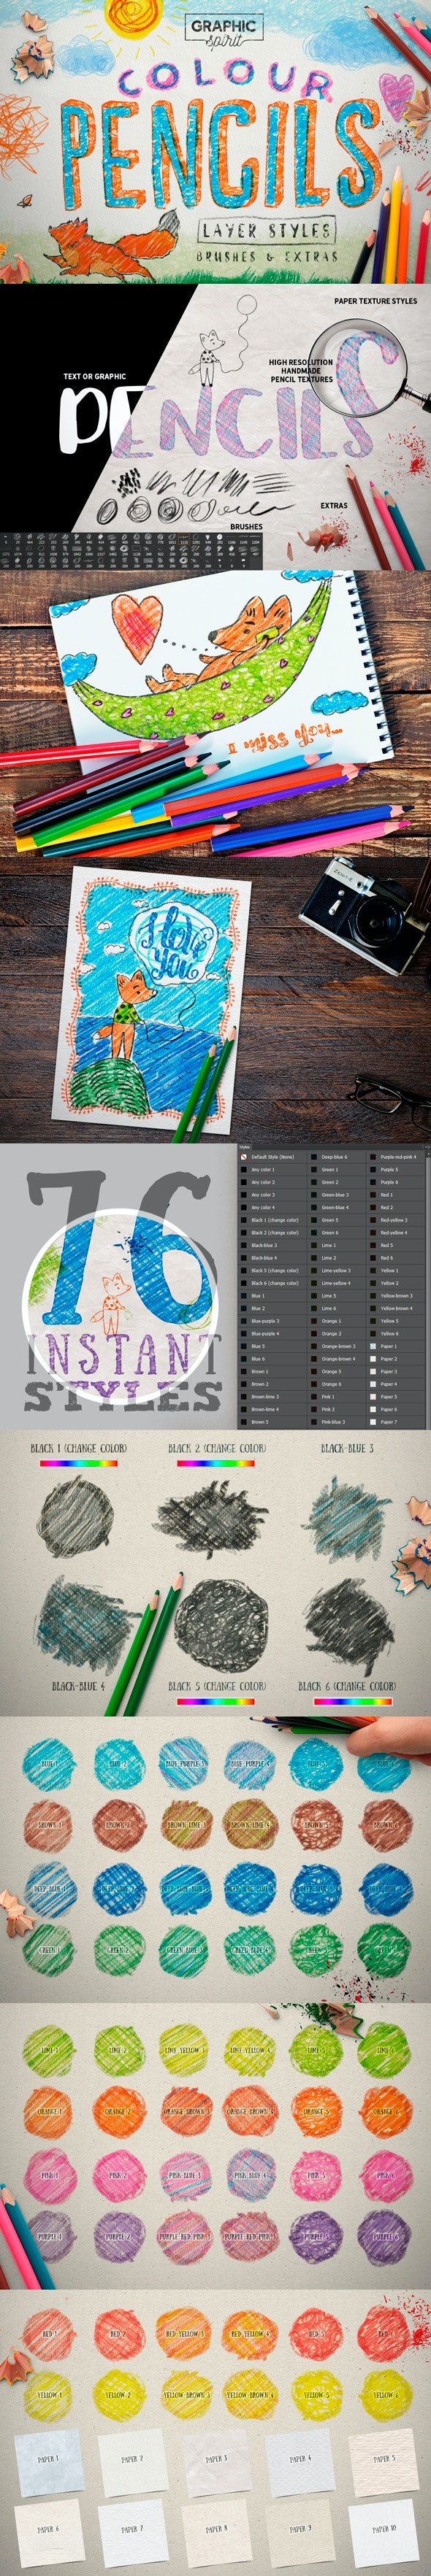 Colour Pencil Box Photoshop Styles - Text Effects Styles